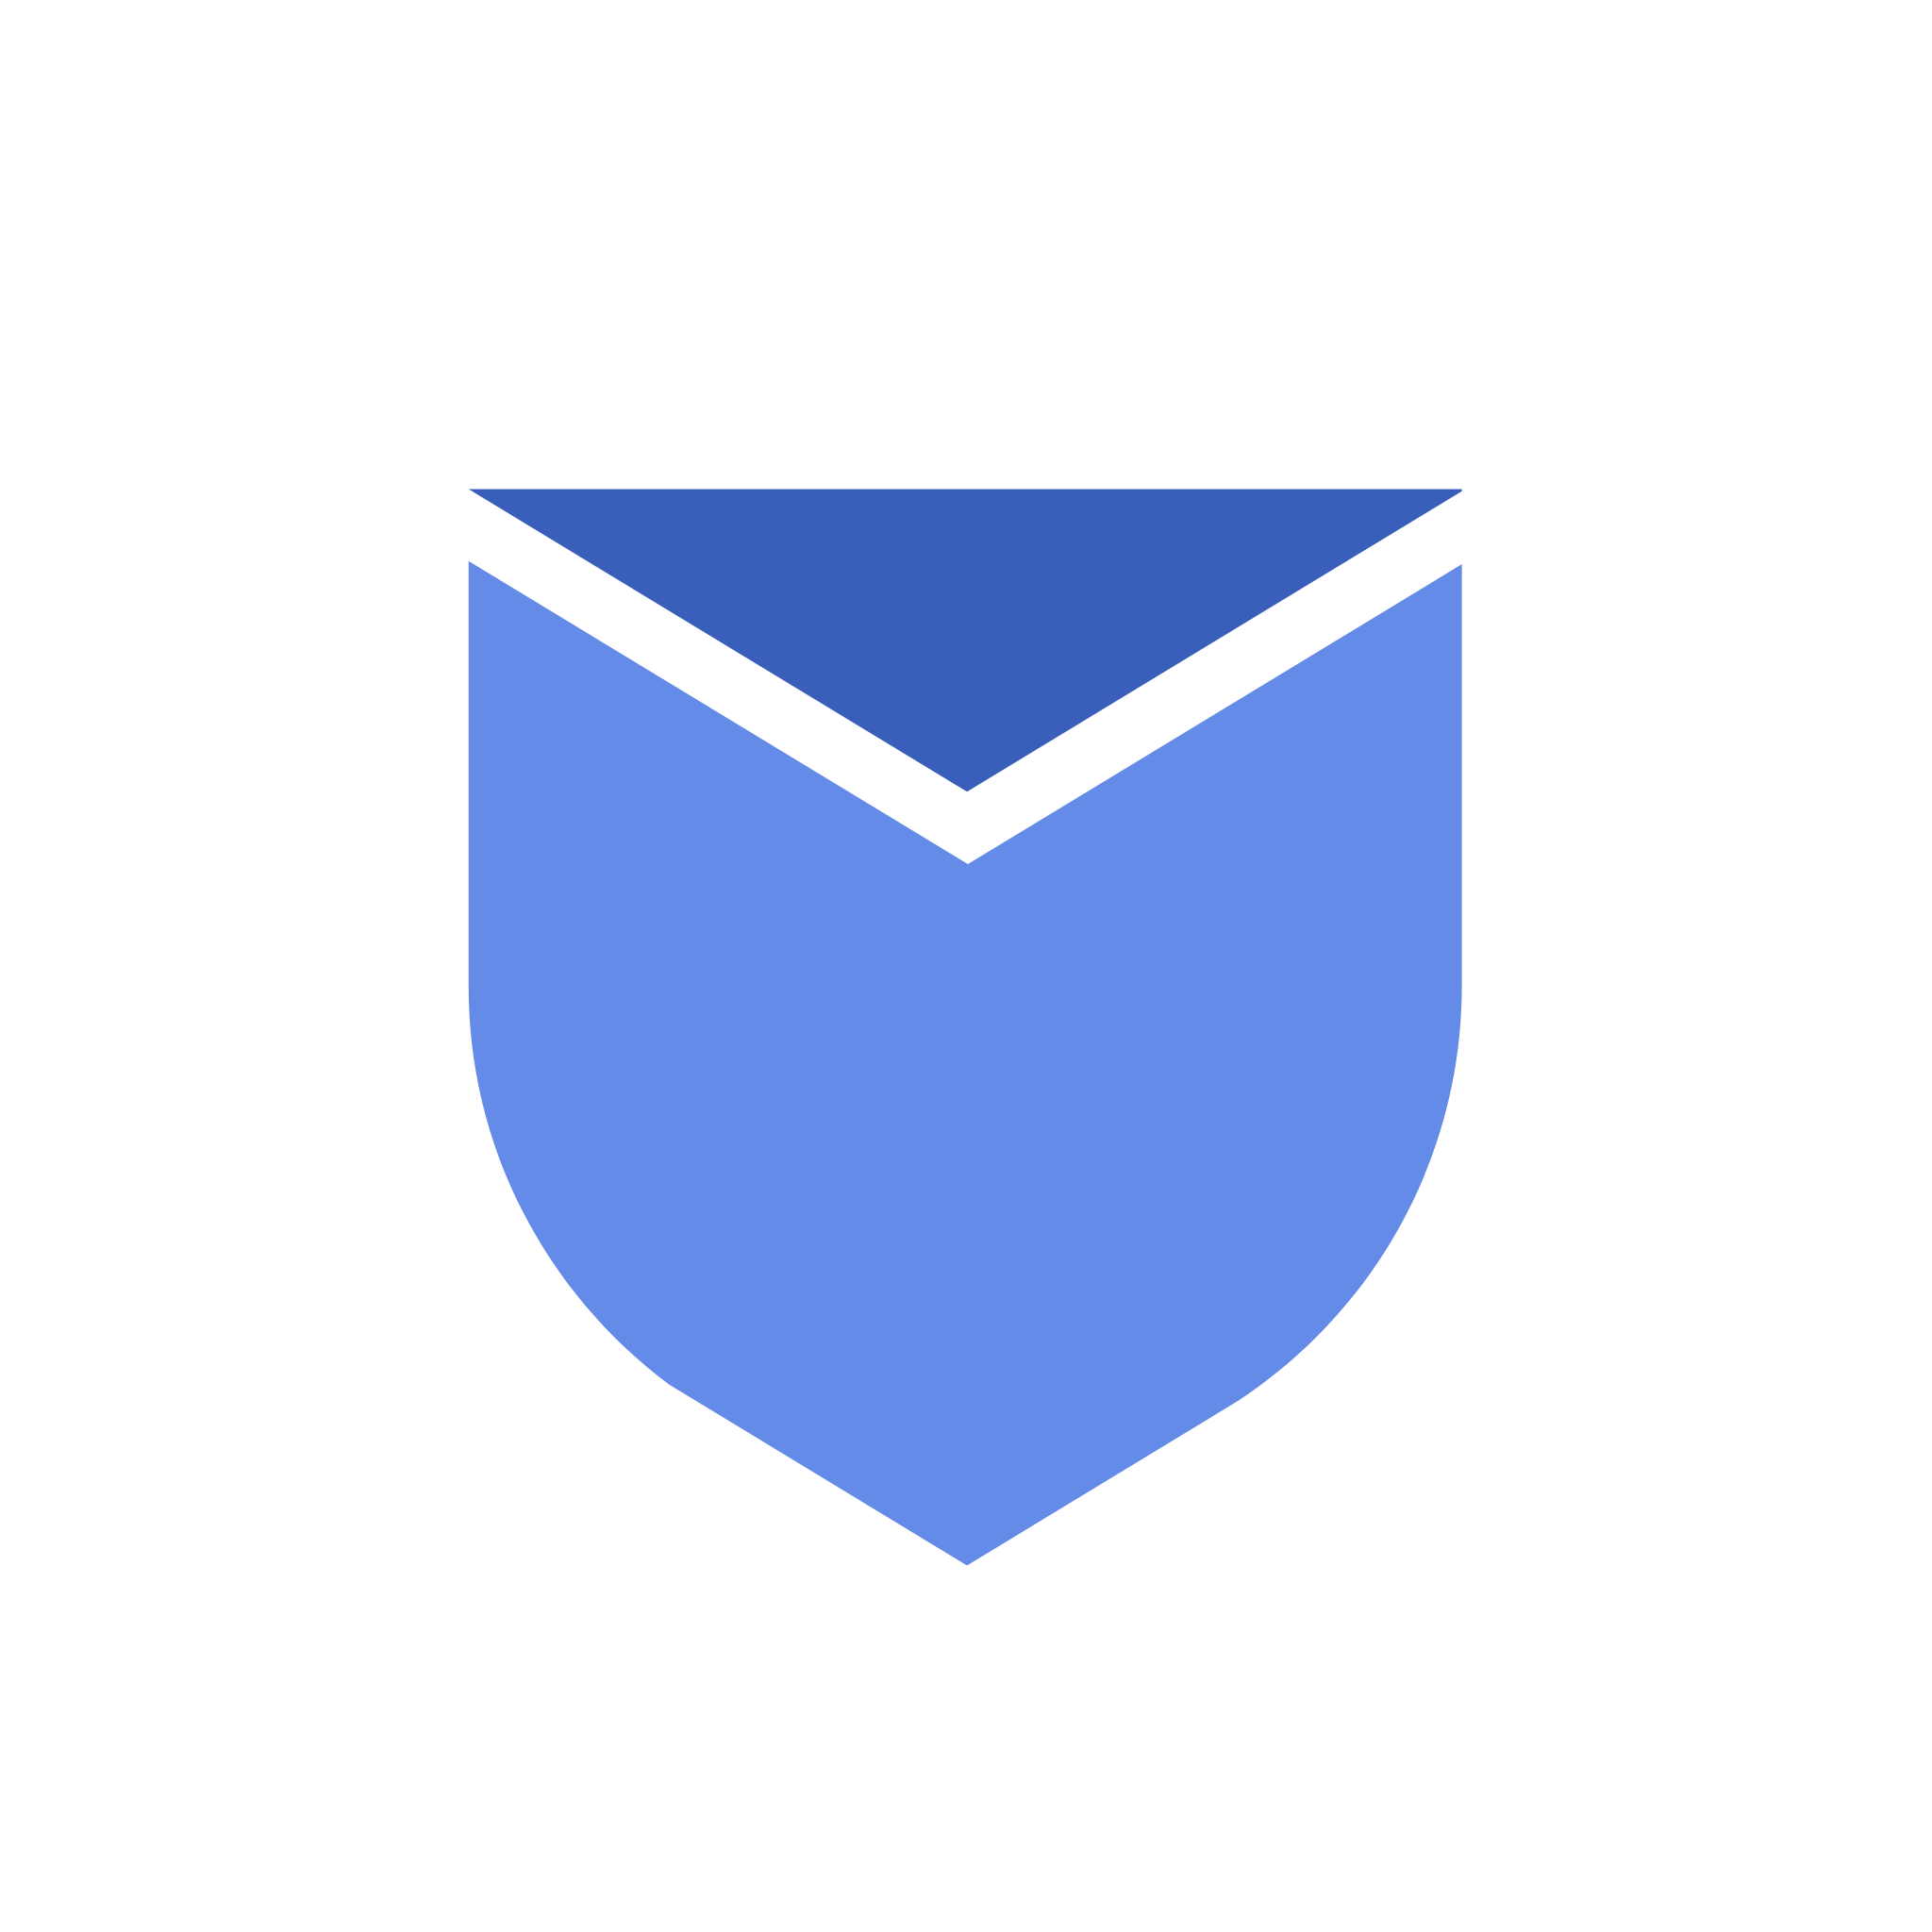 com.inbox.clean.free.gmail.unsubscribe.smart.email.fresh.mailbox